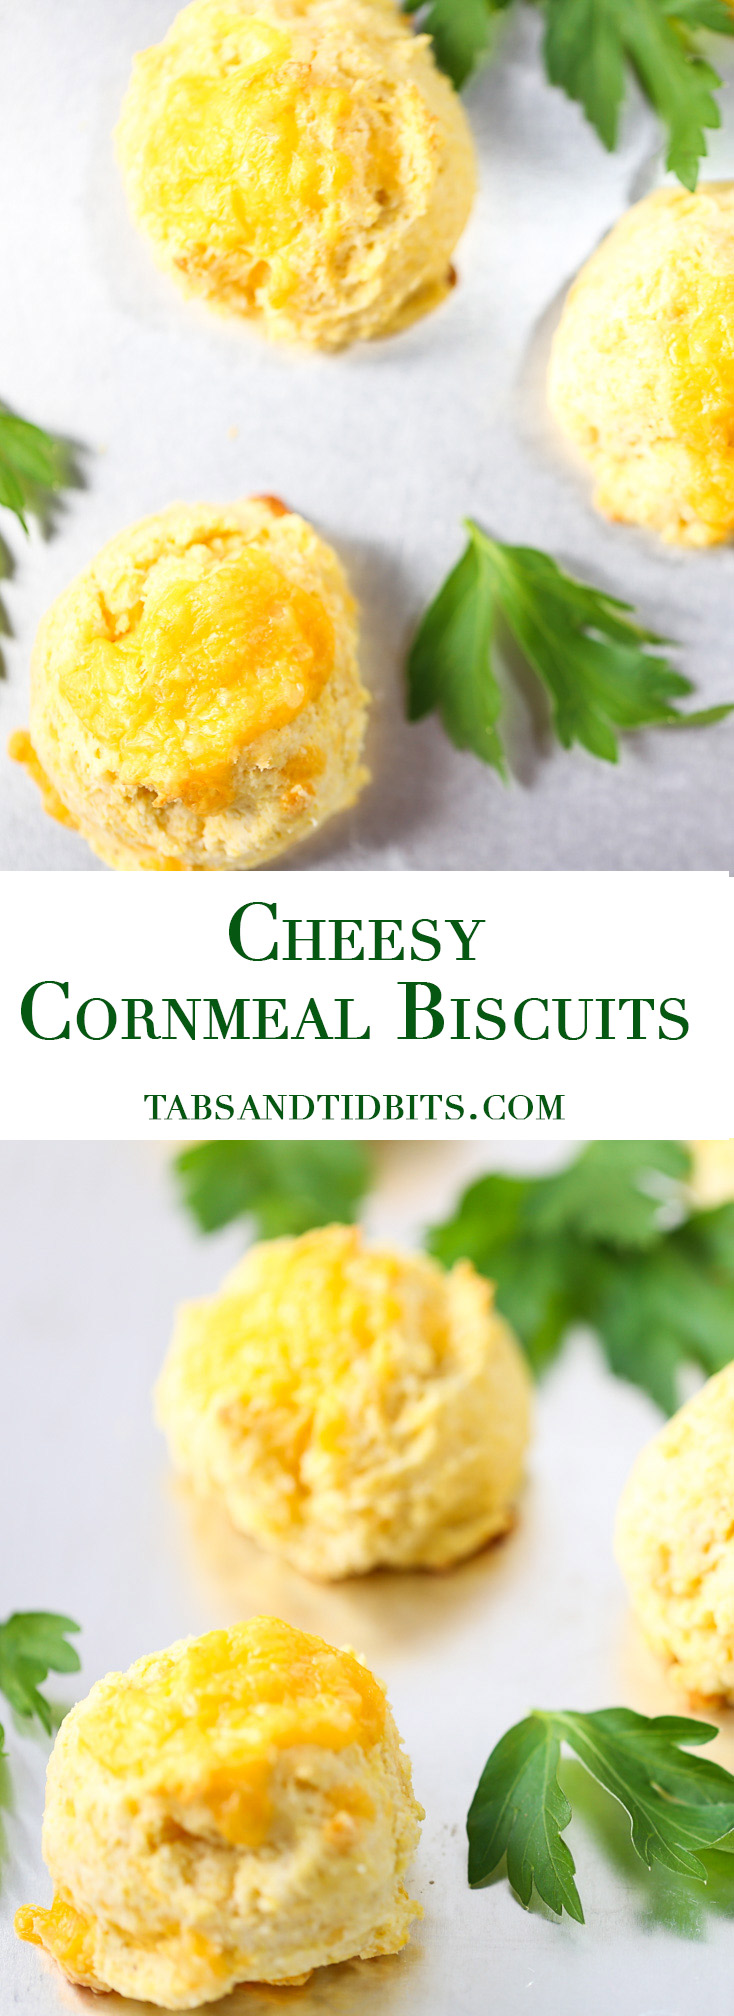 Cheesy Cornmeal Biscuits - Buttery and cheesy drop cornmeal biscuits that make the perfect addition to a hot bowl of soup or chili!